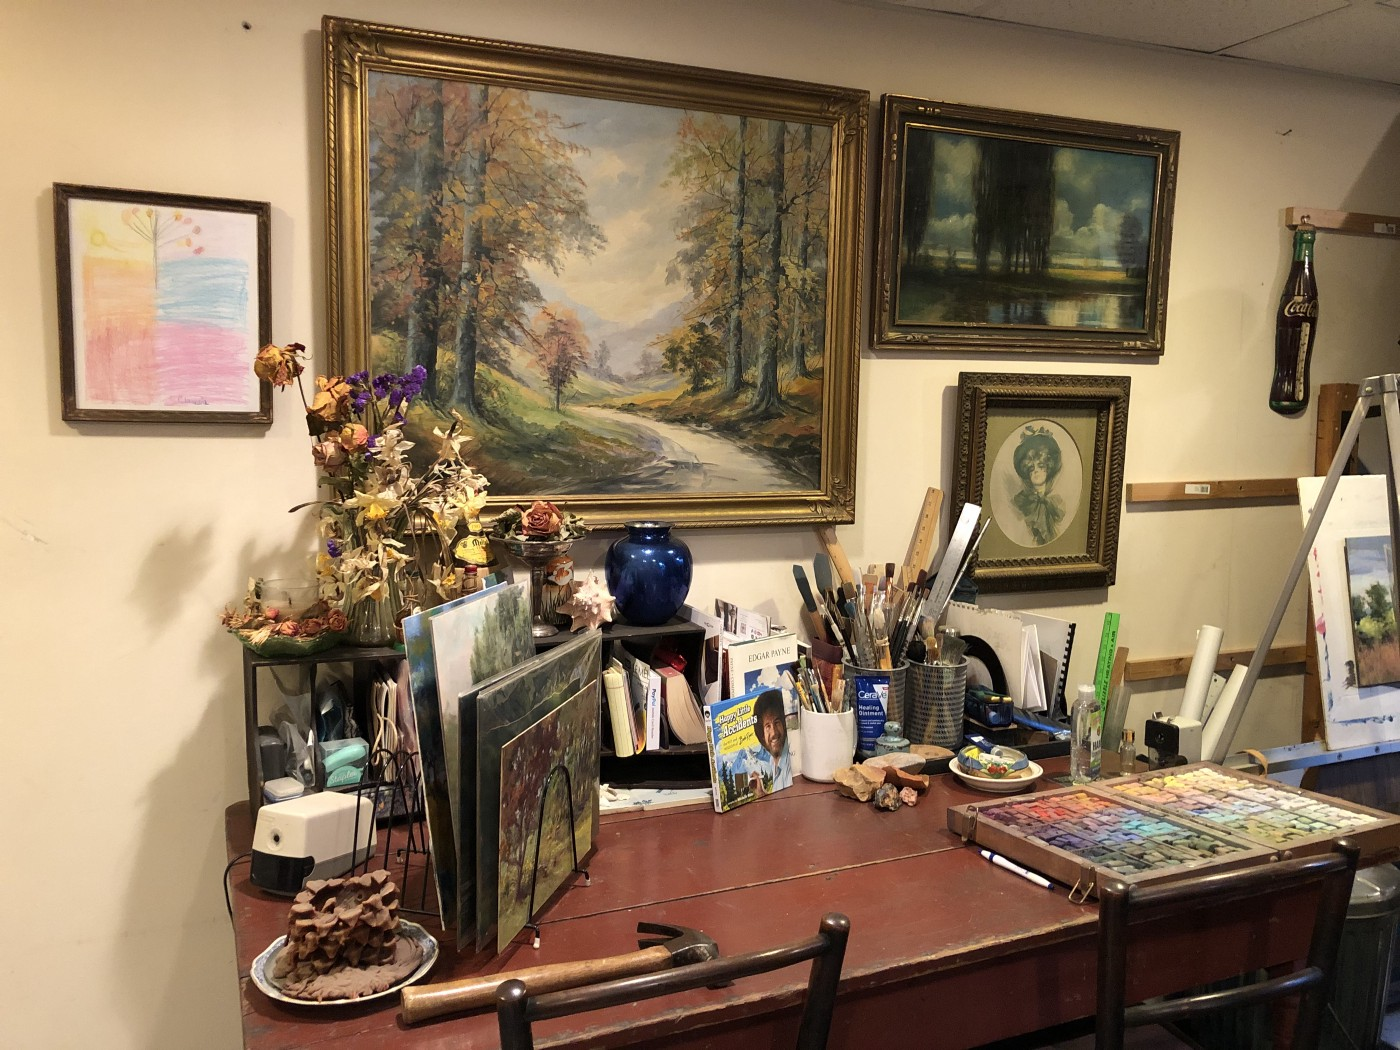 Personal Items In My Studio, wall art, box of pastels and family memorabilia—photo courtesy of the author Marsha Hamby Savage